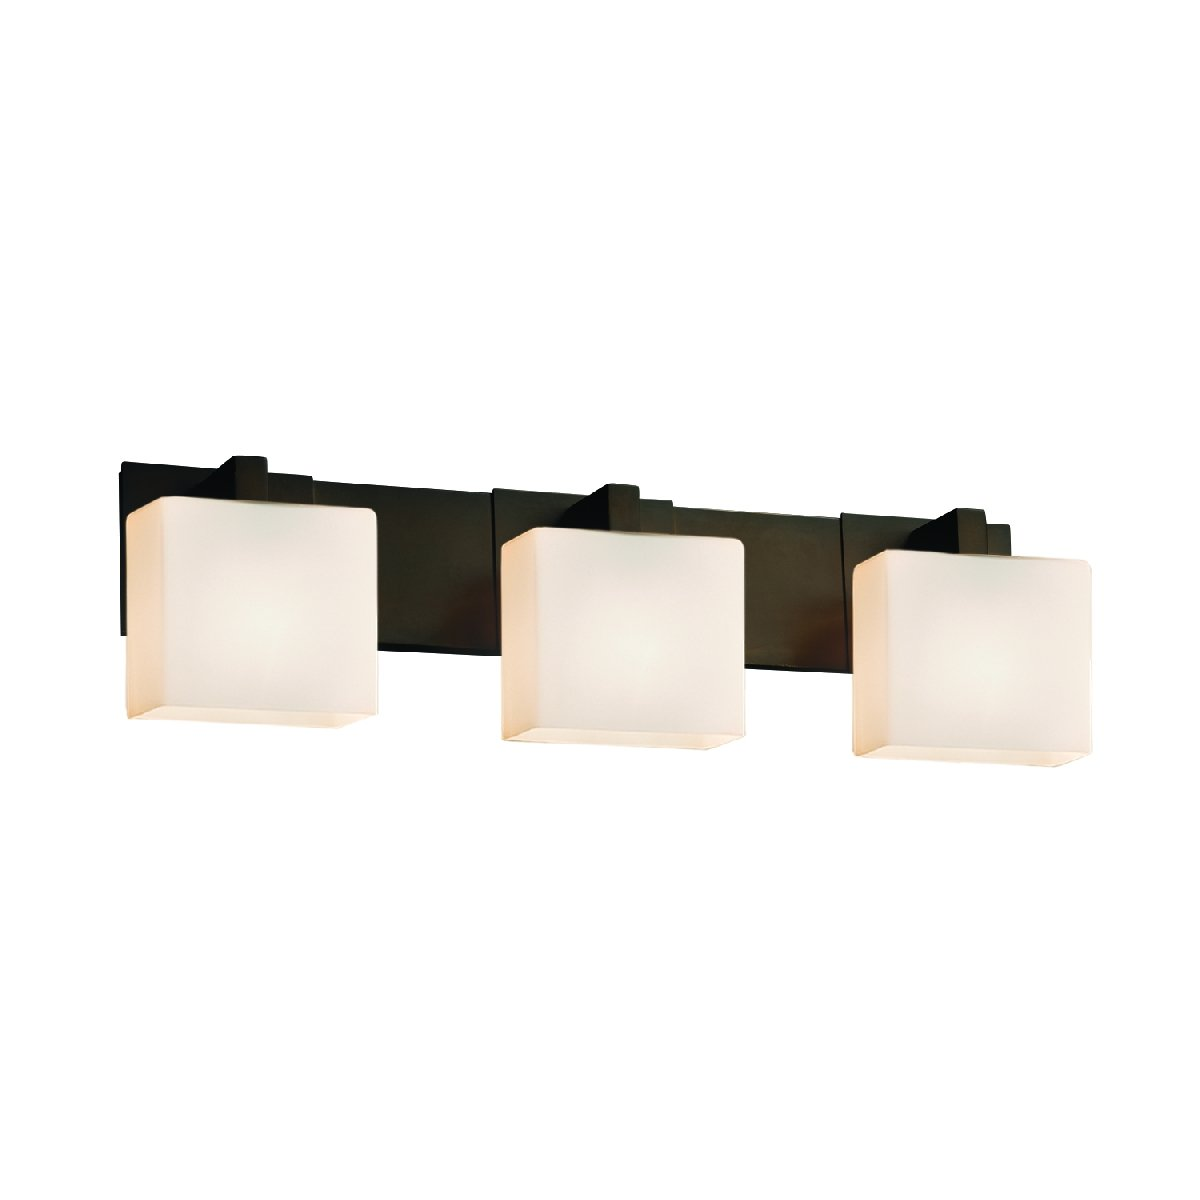 Justice Design Group Lighting FSN-8923-55-OPAL-DBRZ-LED3-2100 Modular 3 Rectangle Shade LED Light Bath Bar Dark Bronze